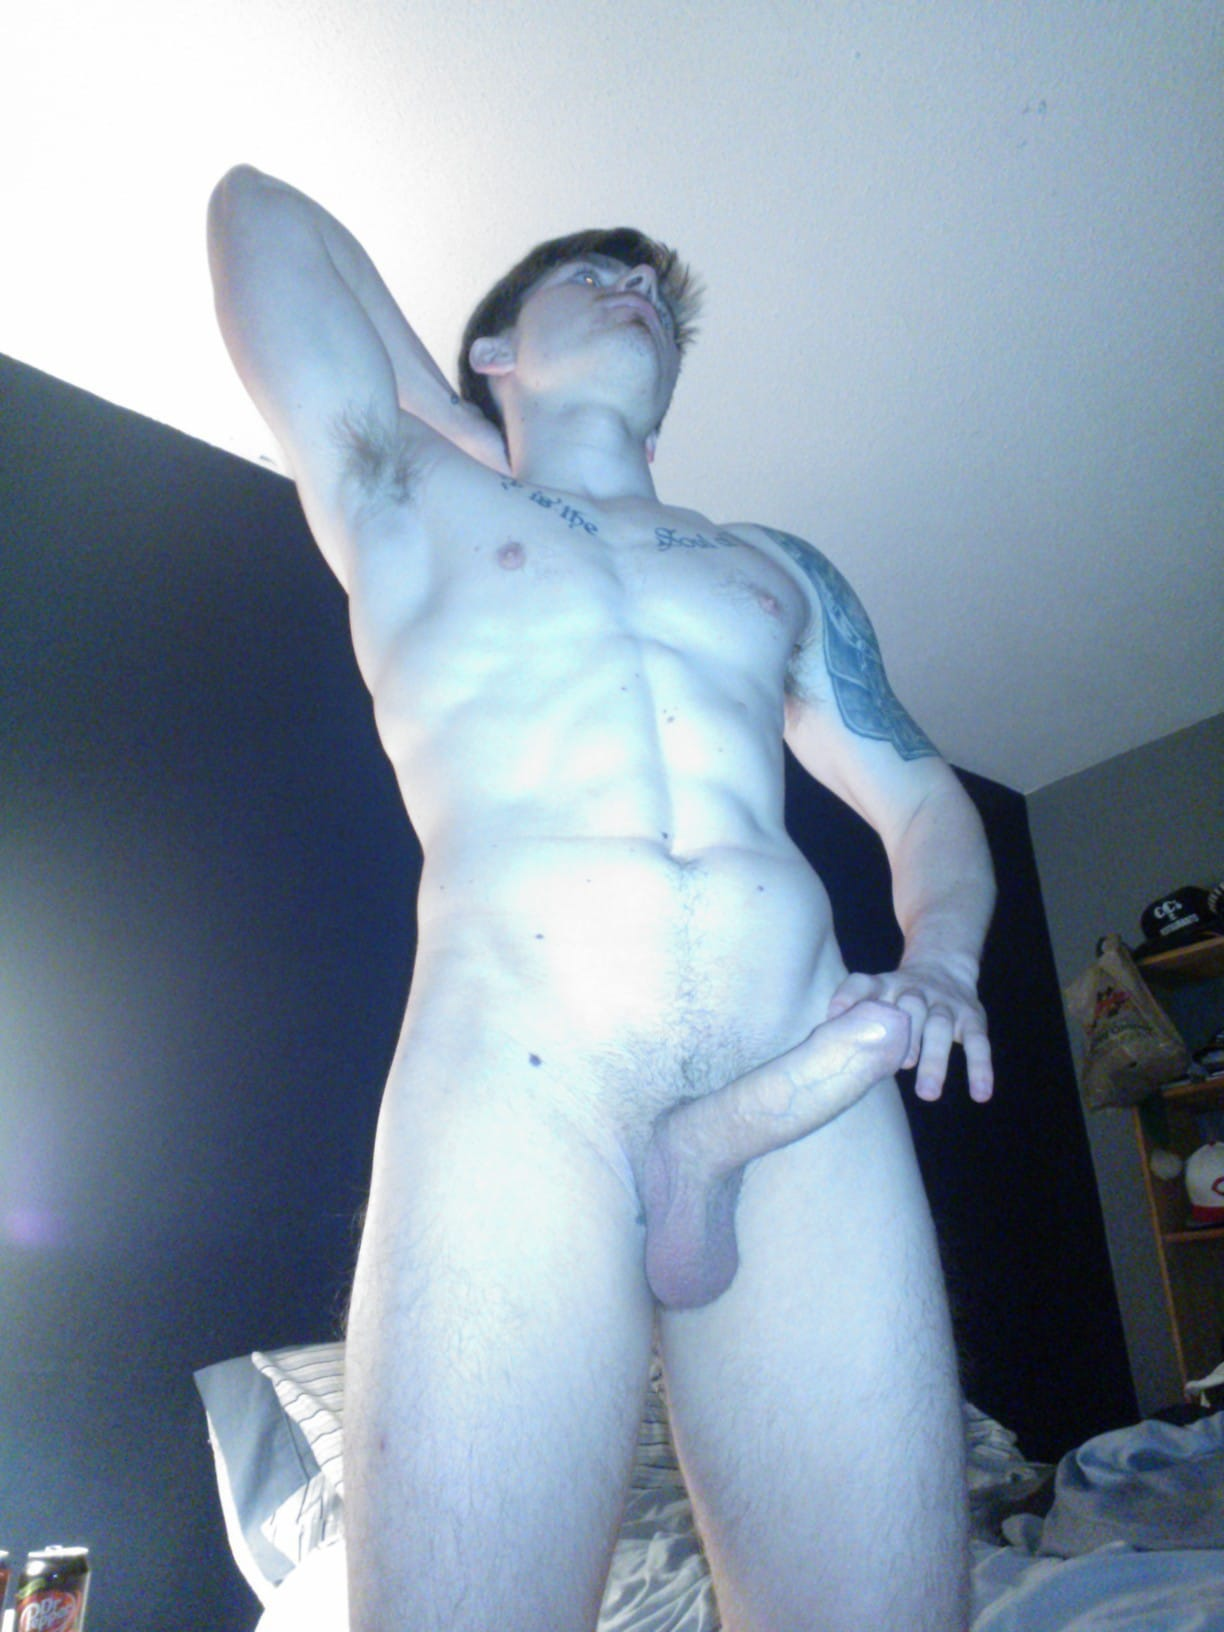 Nude Muscle Boy Showing Off His Body